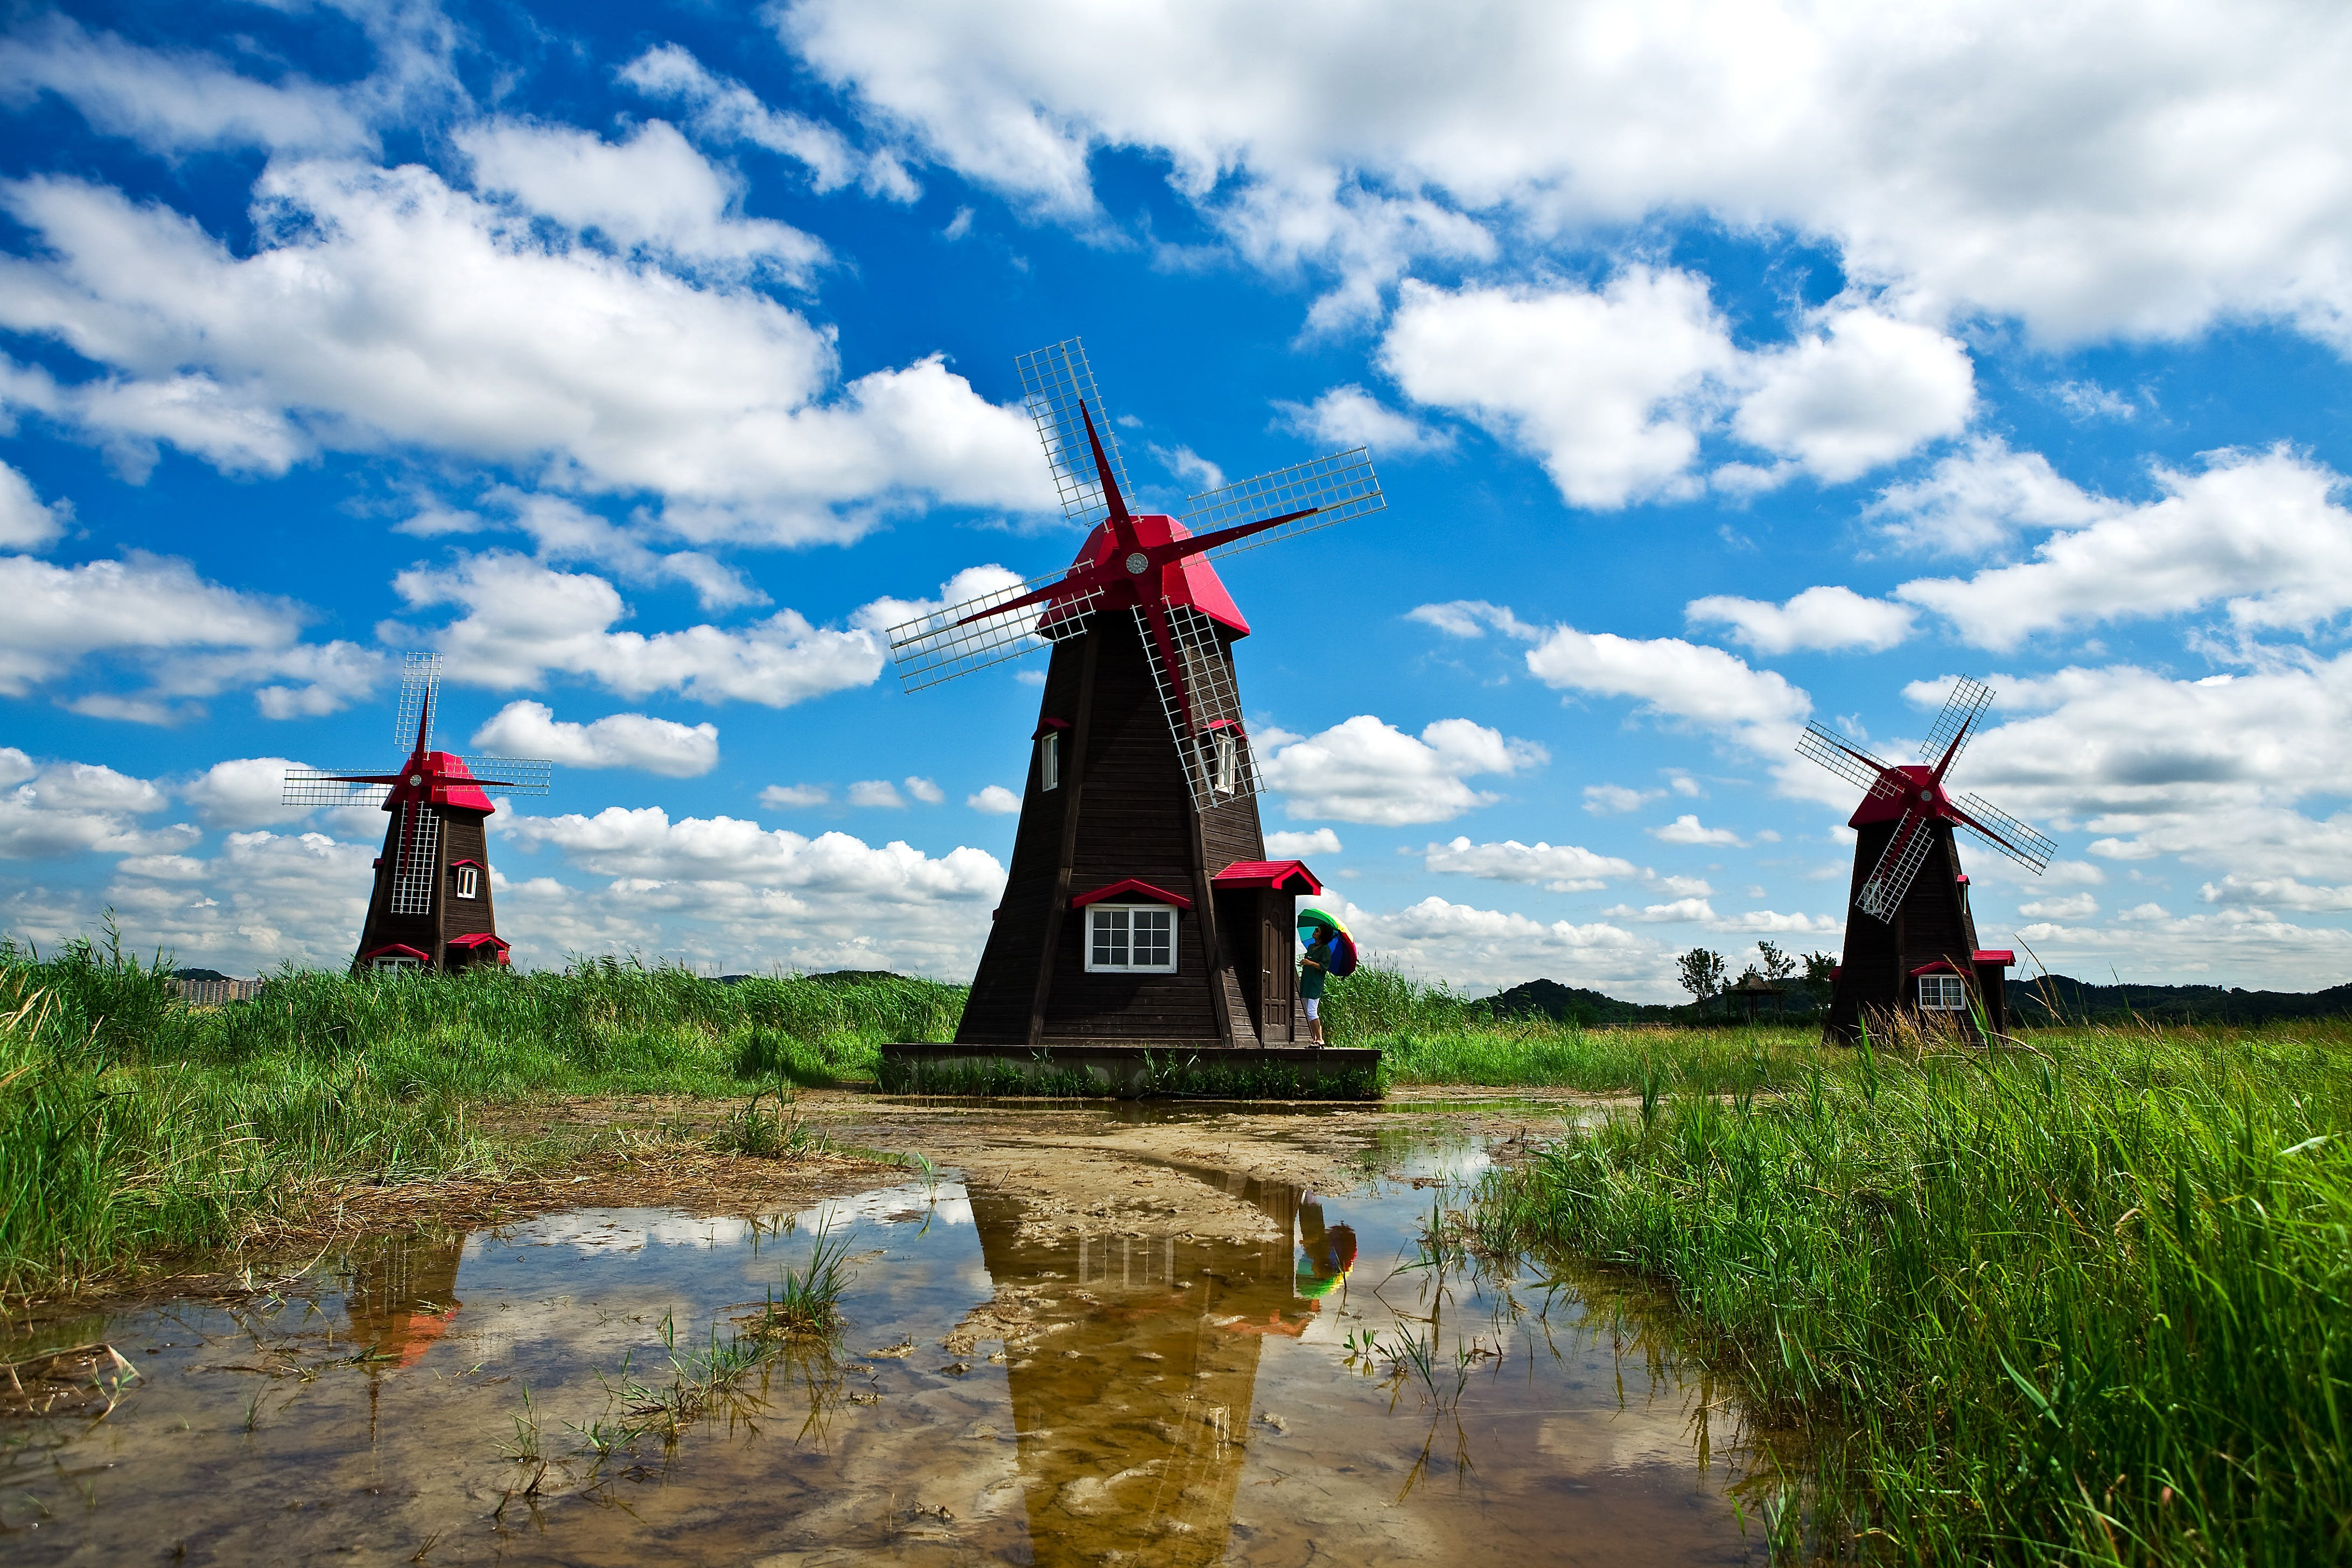 agriculture, architecture, blue sky